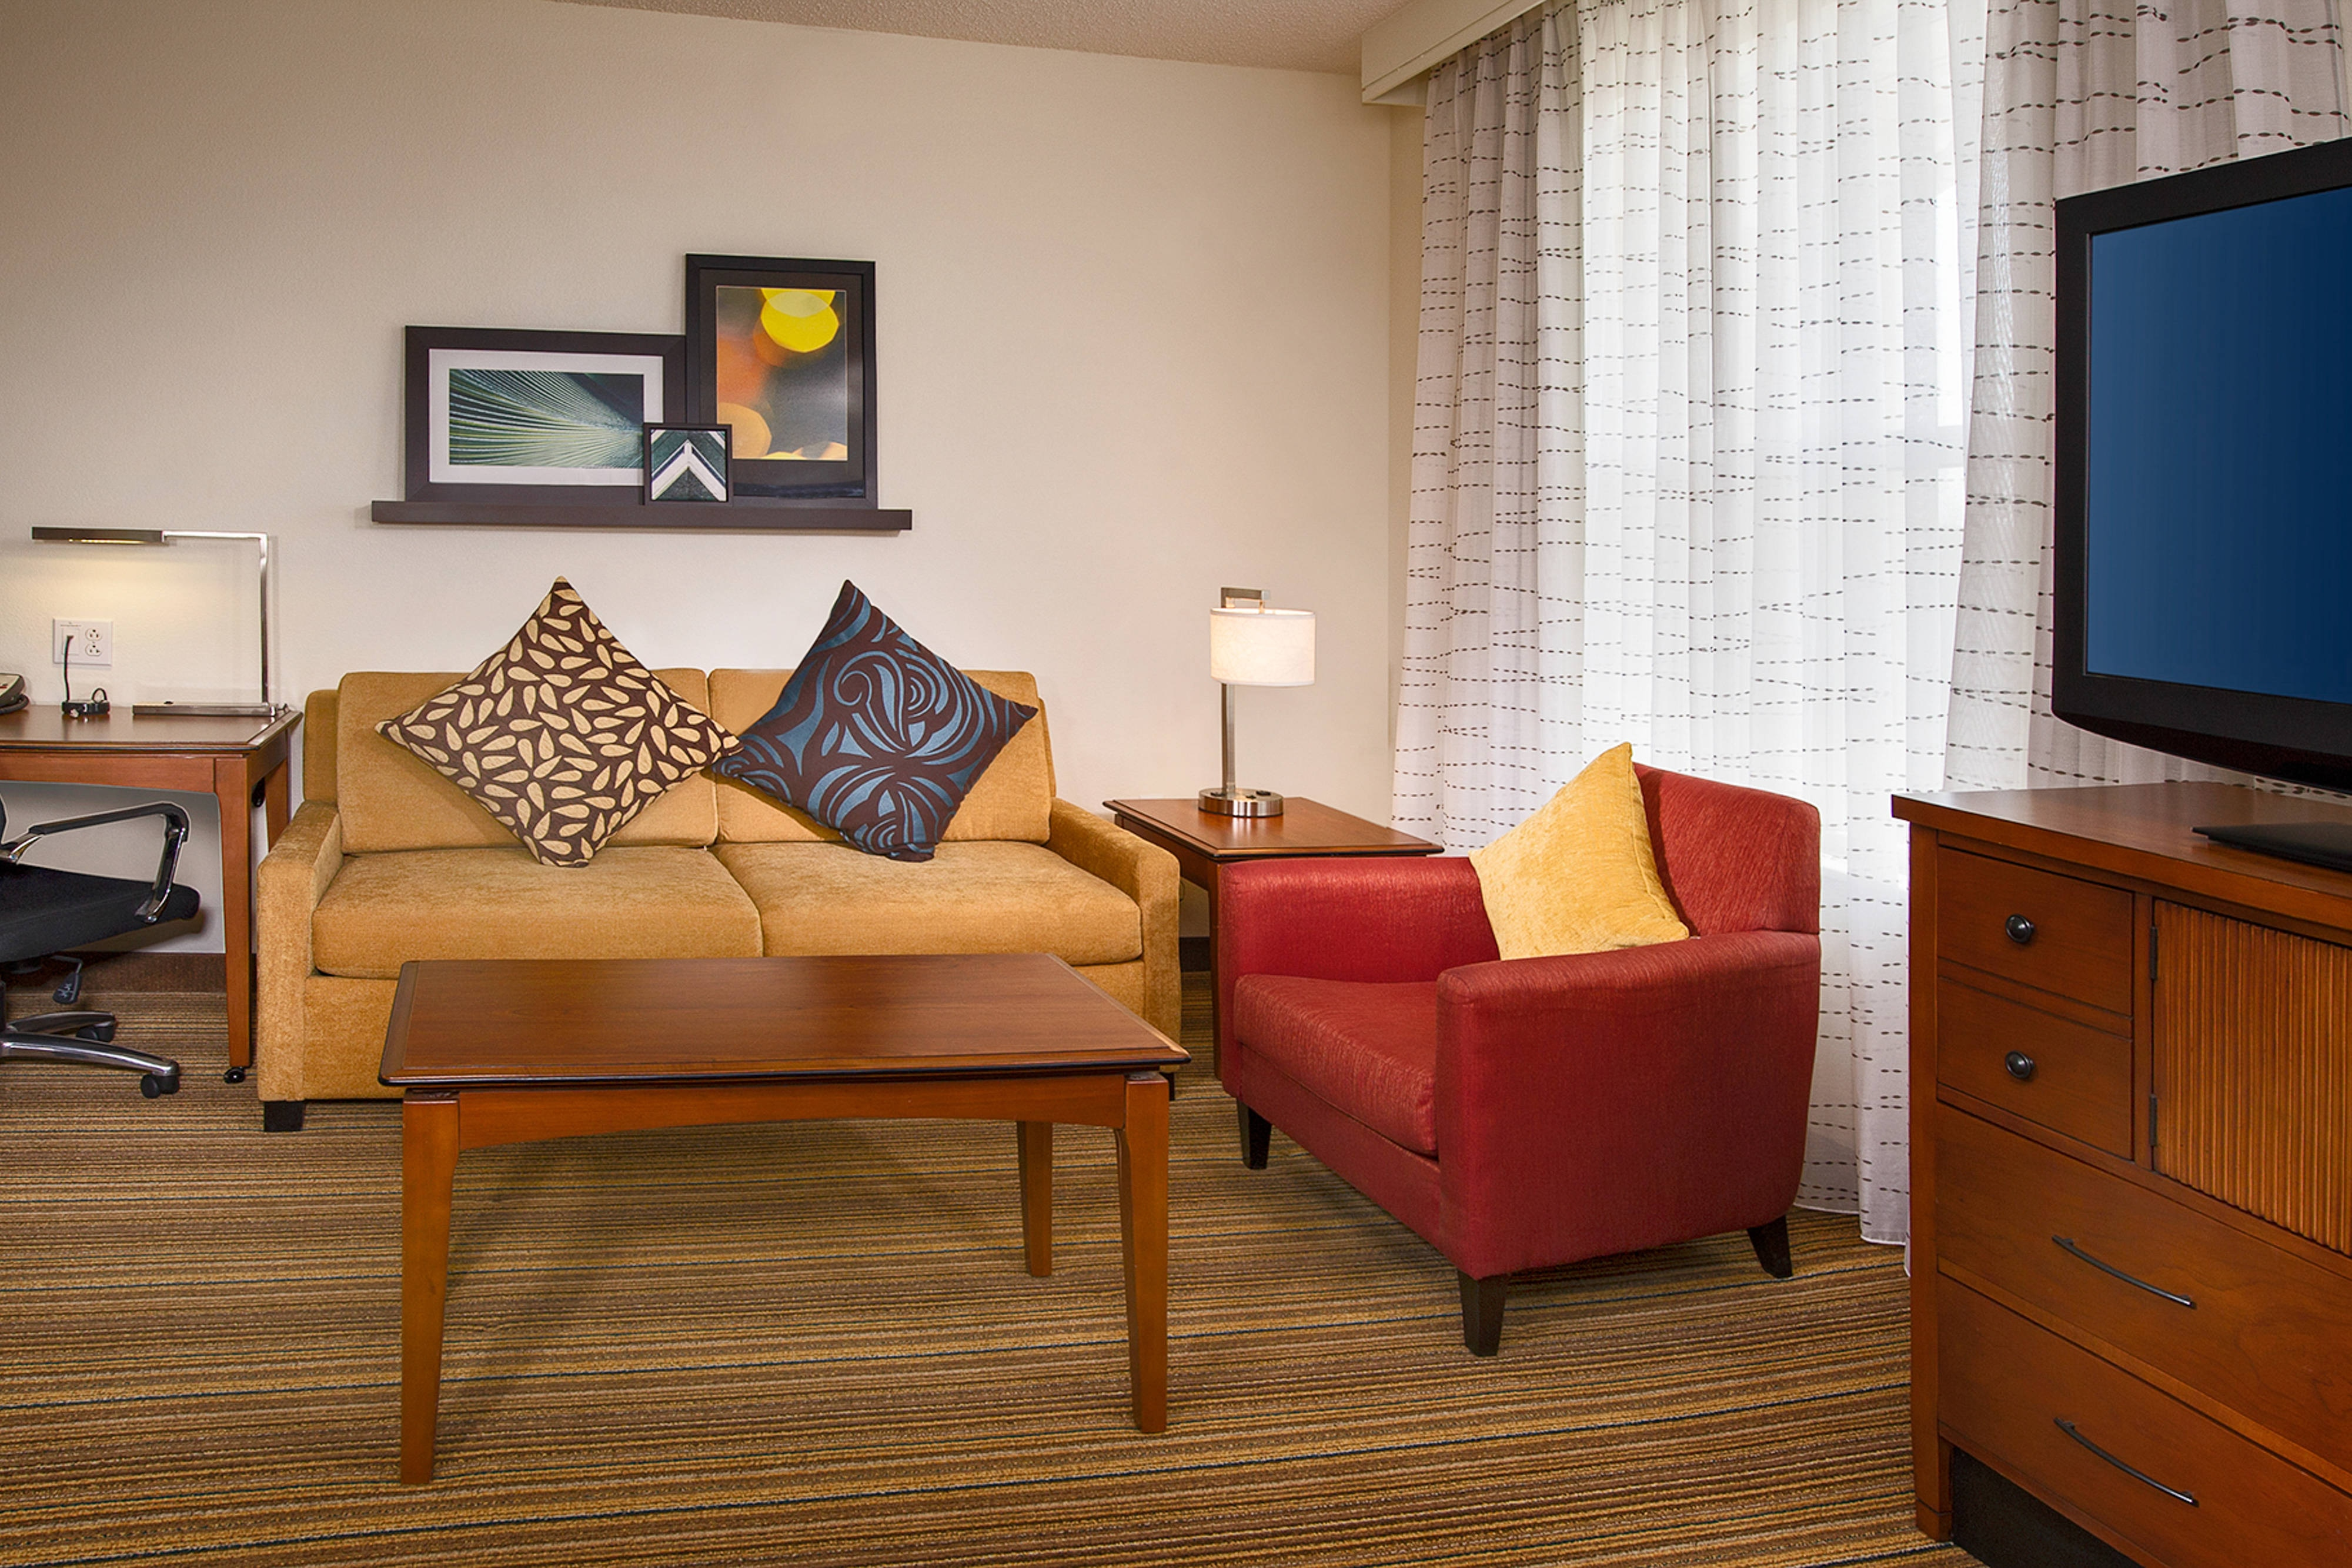 Make The Most Of Your Journey To Silver Spring